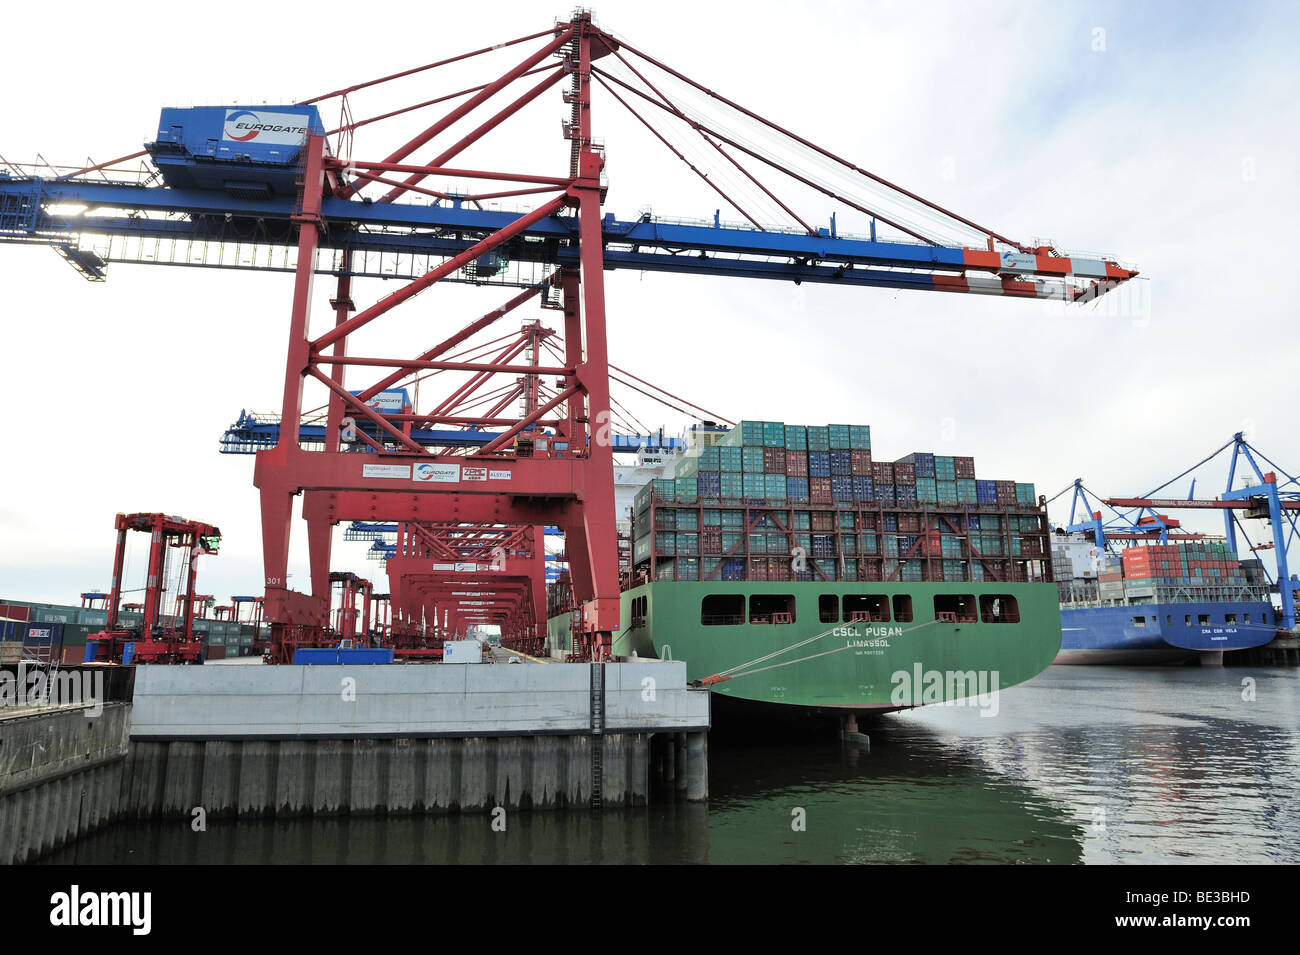 Container ship being loaded at the Eurogate, Hamburg, Germany, Europe Stock Photo